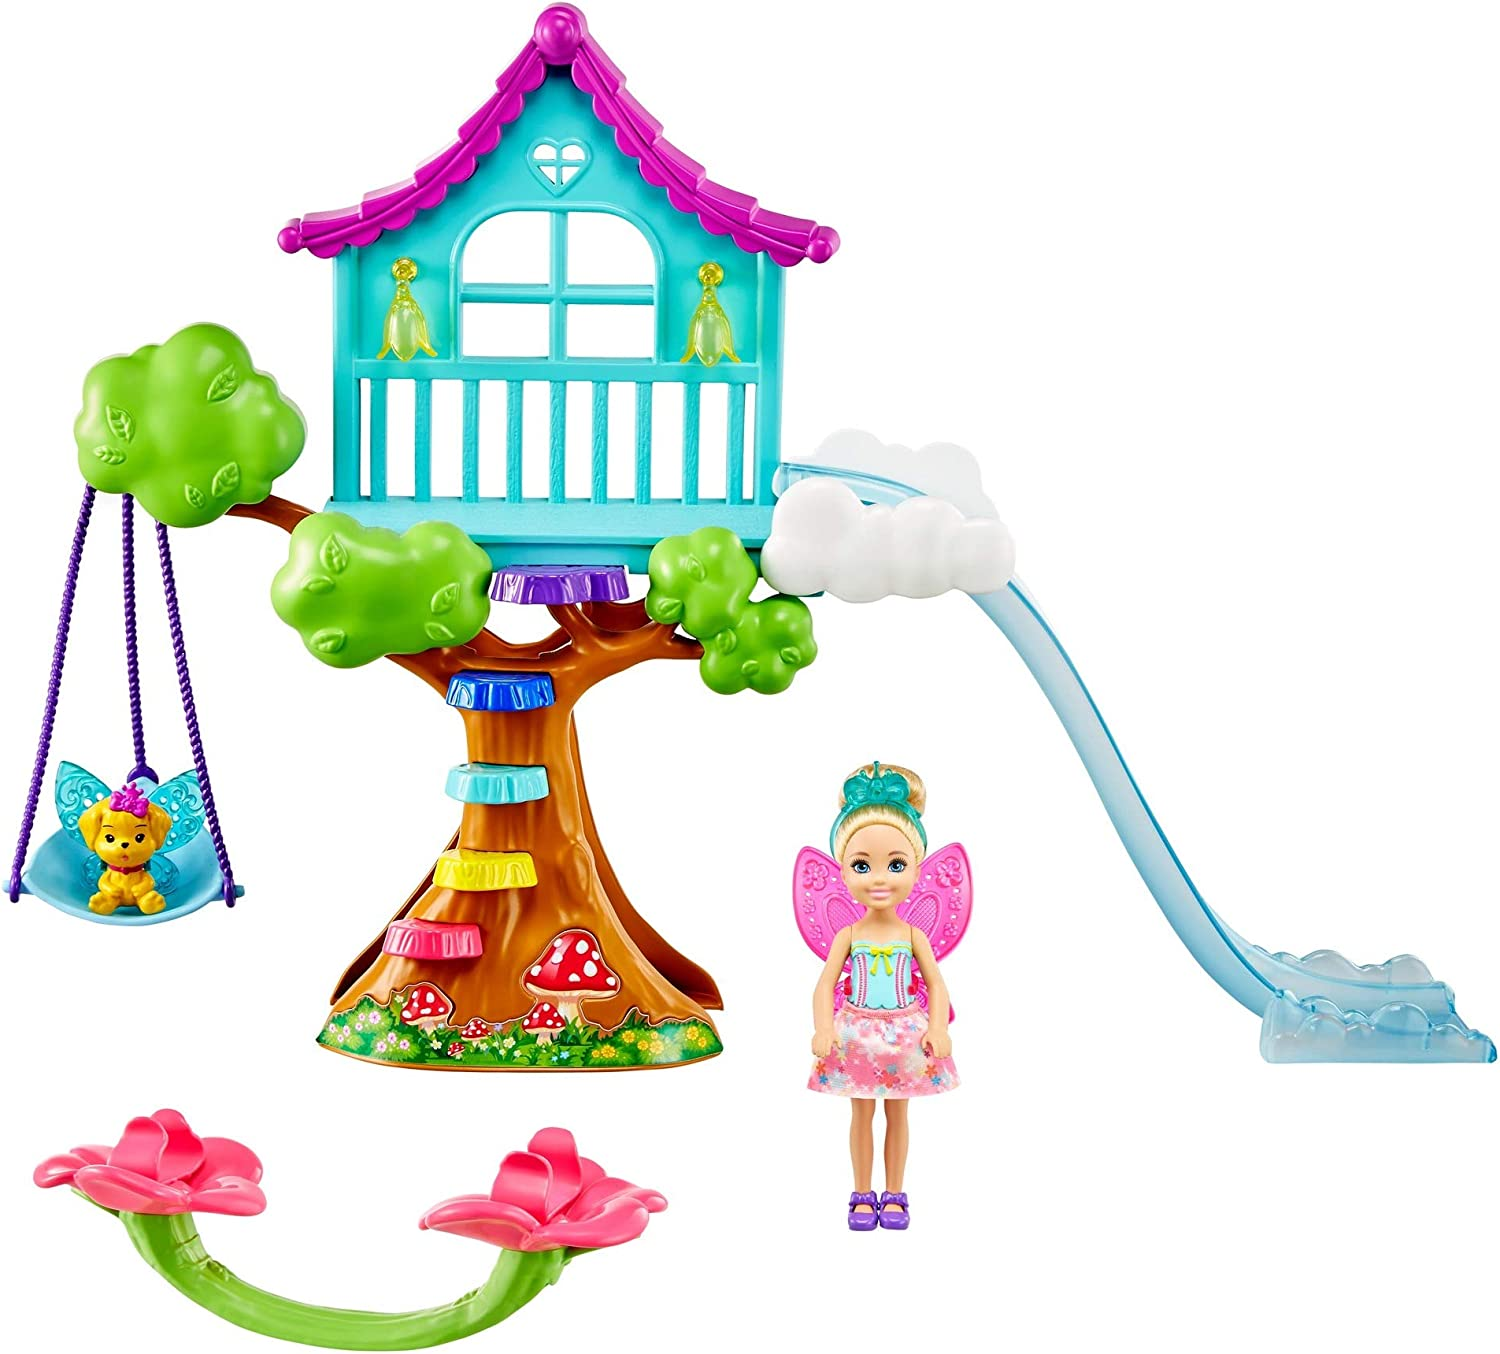 Barbie Dreamtopia Chelsea Fairy Doll and Fairytale Treehouse Playset with Seesaw, Swing, Slide, Pet and Accessories, Gift for 3 to 7 Year Olds